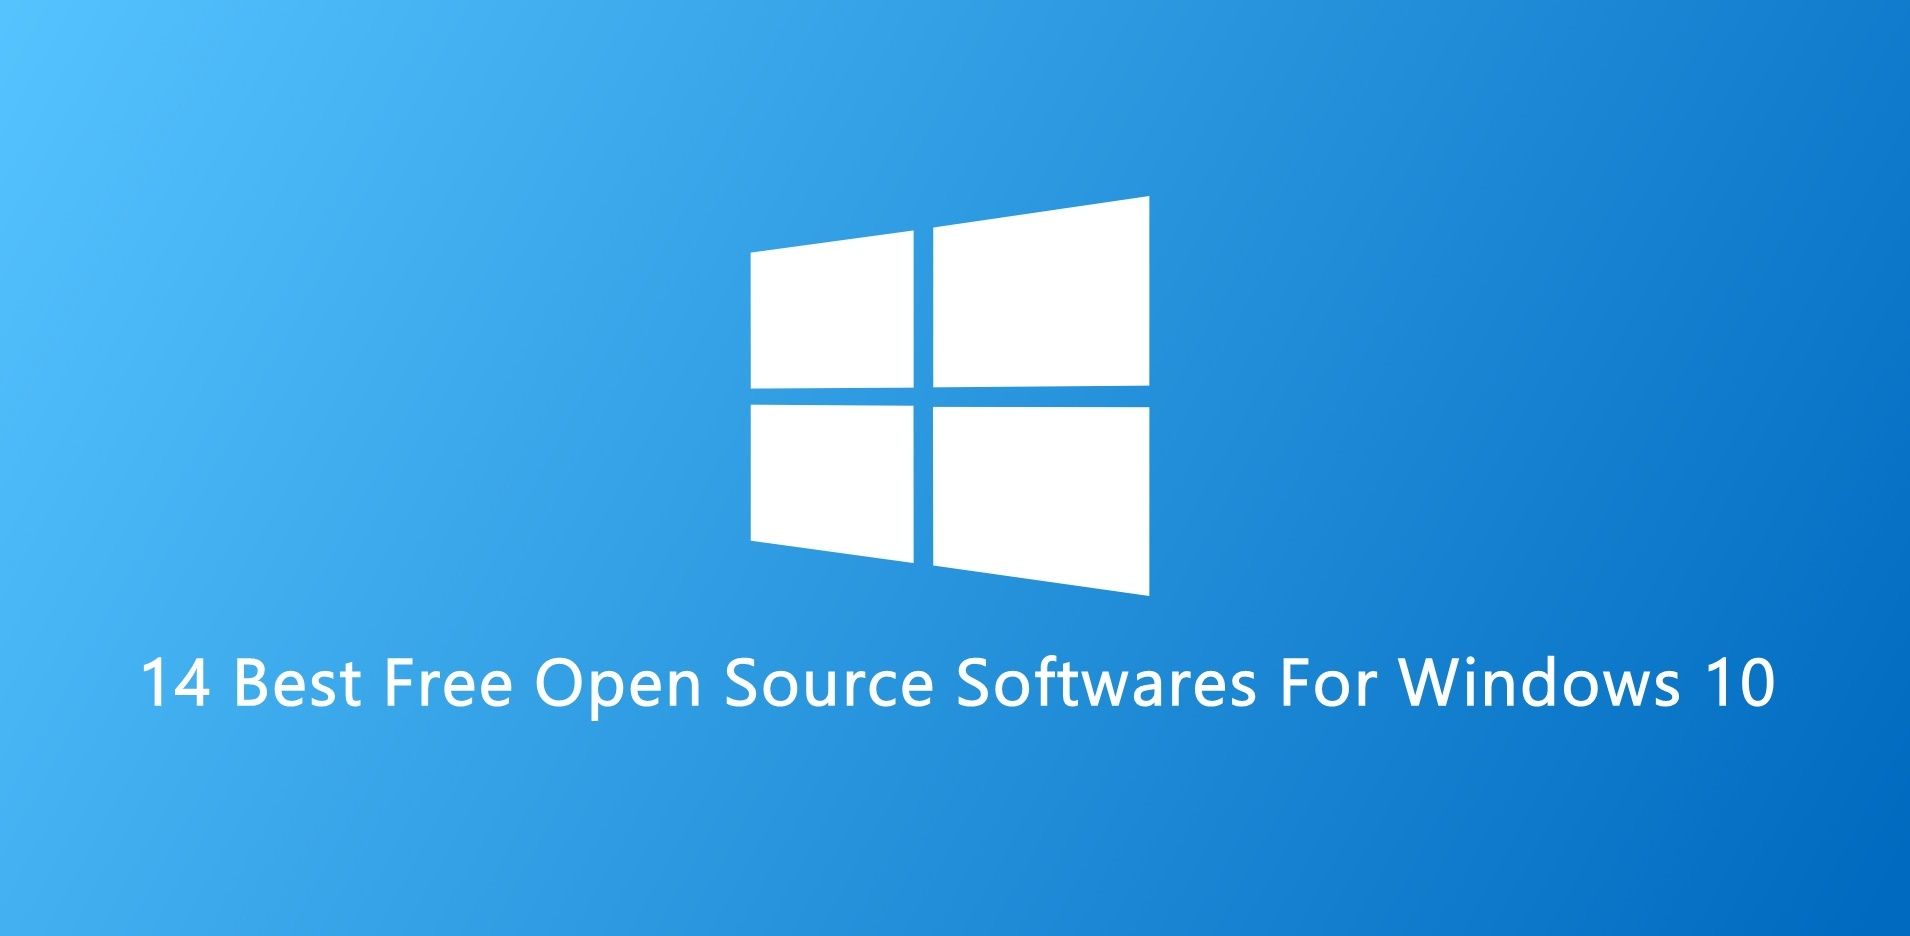 14 Best Free Open Source Softwares For Windows 10